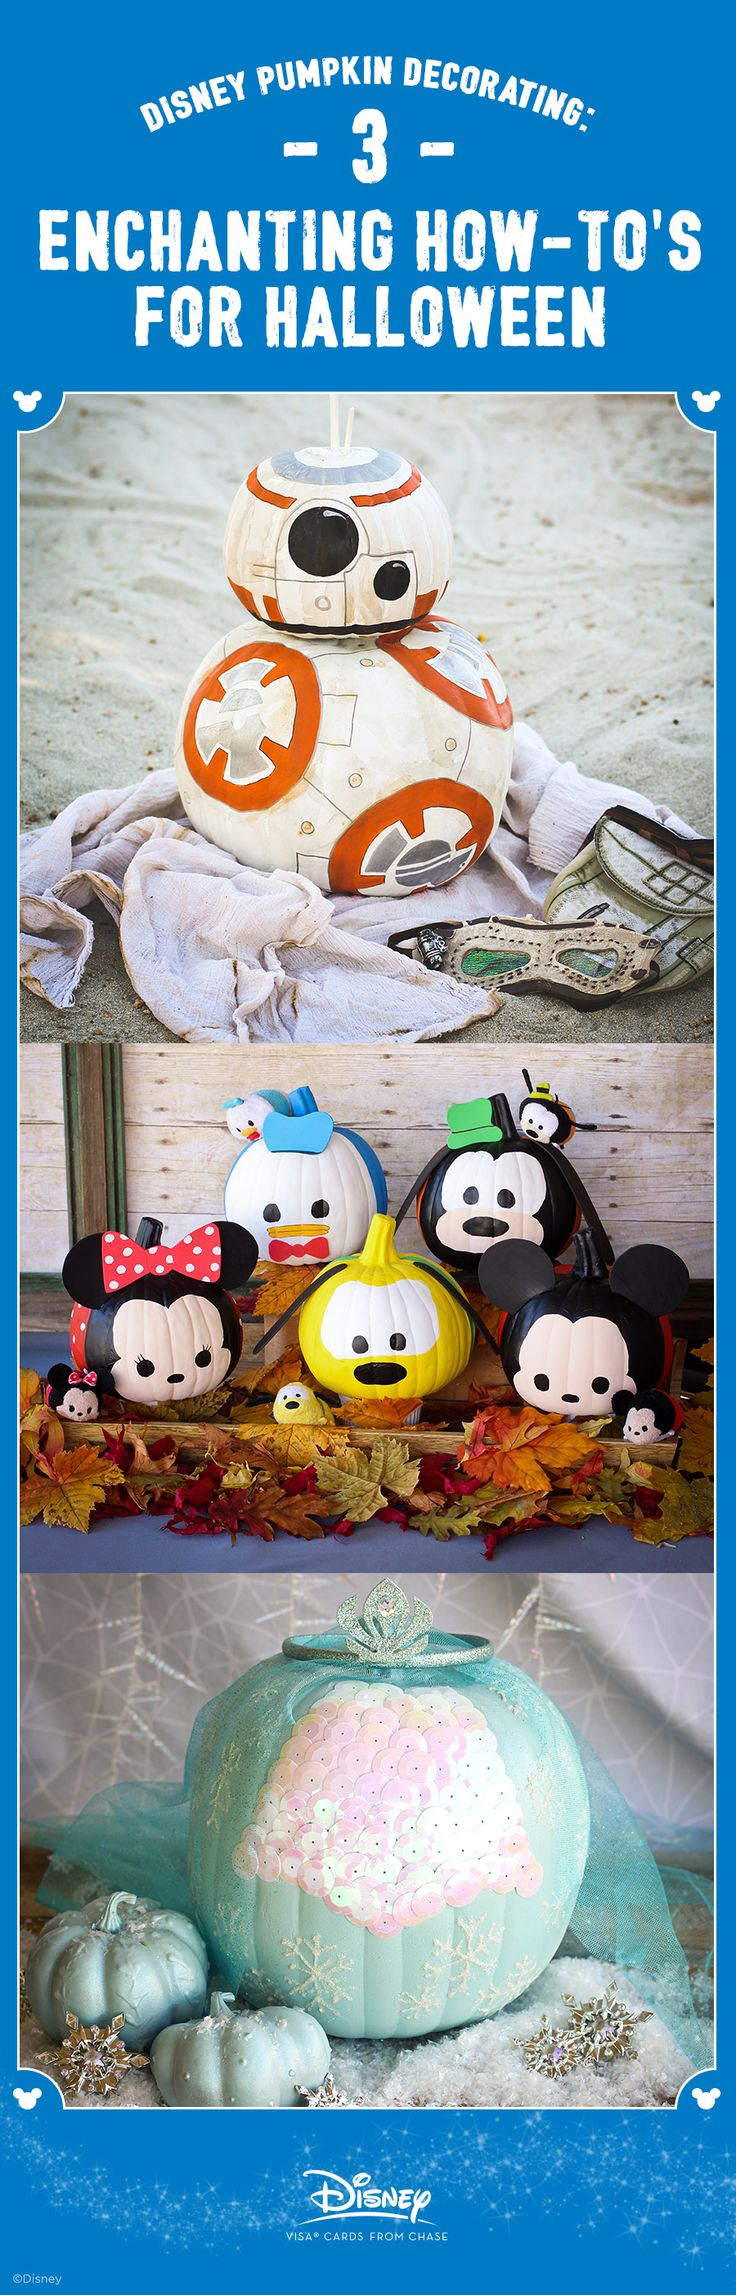 disney pumpkin decorating 3 enchanting how tos for halloween